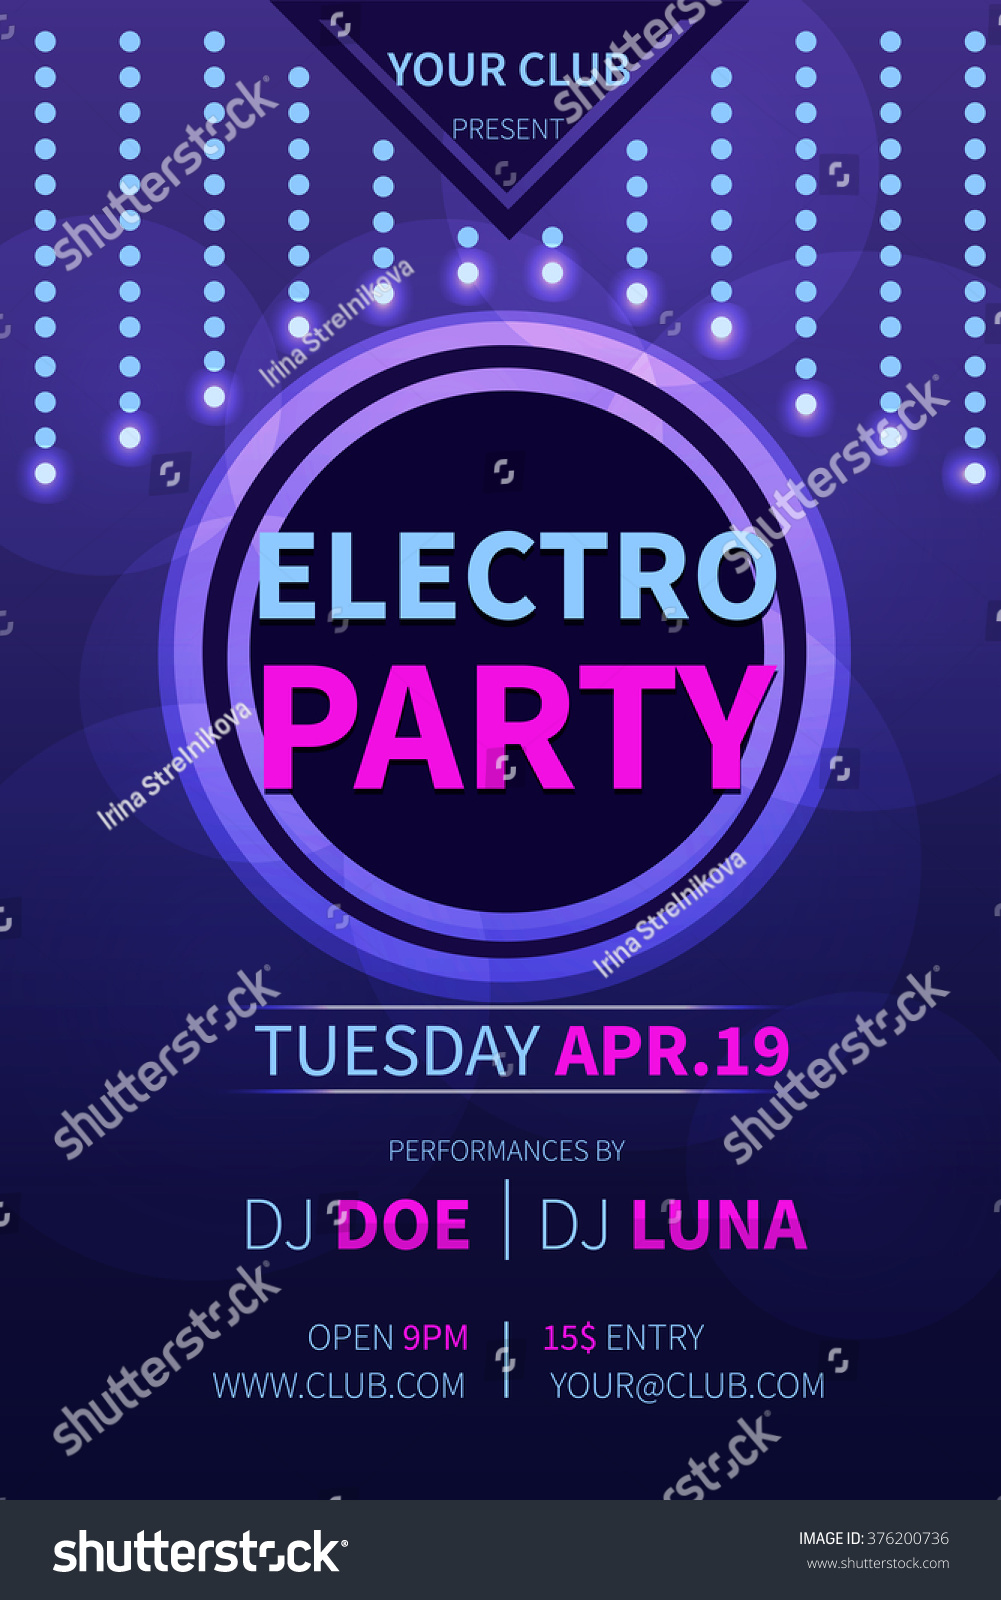 vector electro party flyer template abstract stock vector vector electro party flyer template abstract party invitation flyer party flyer banner